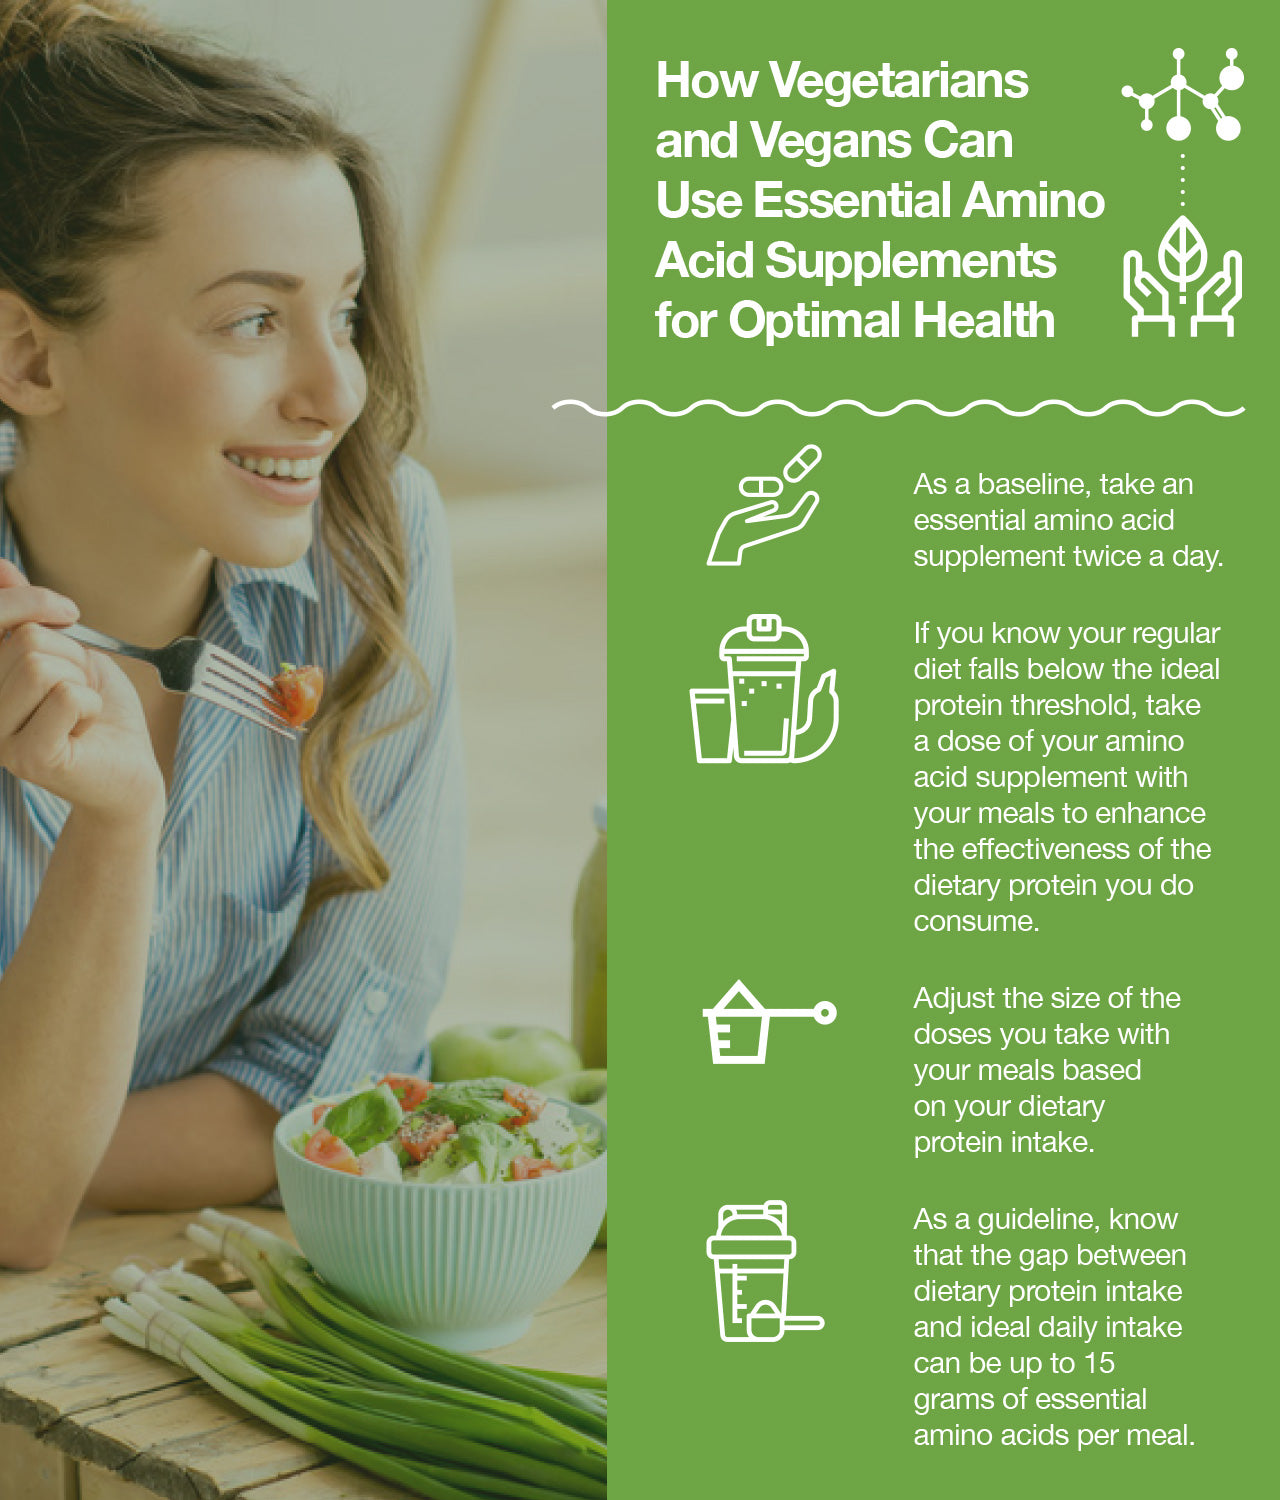 How Vegetarians and Vegans Can Use Essential Amino Acid Supplements for Optimal Health